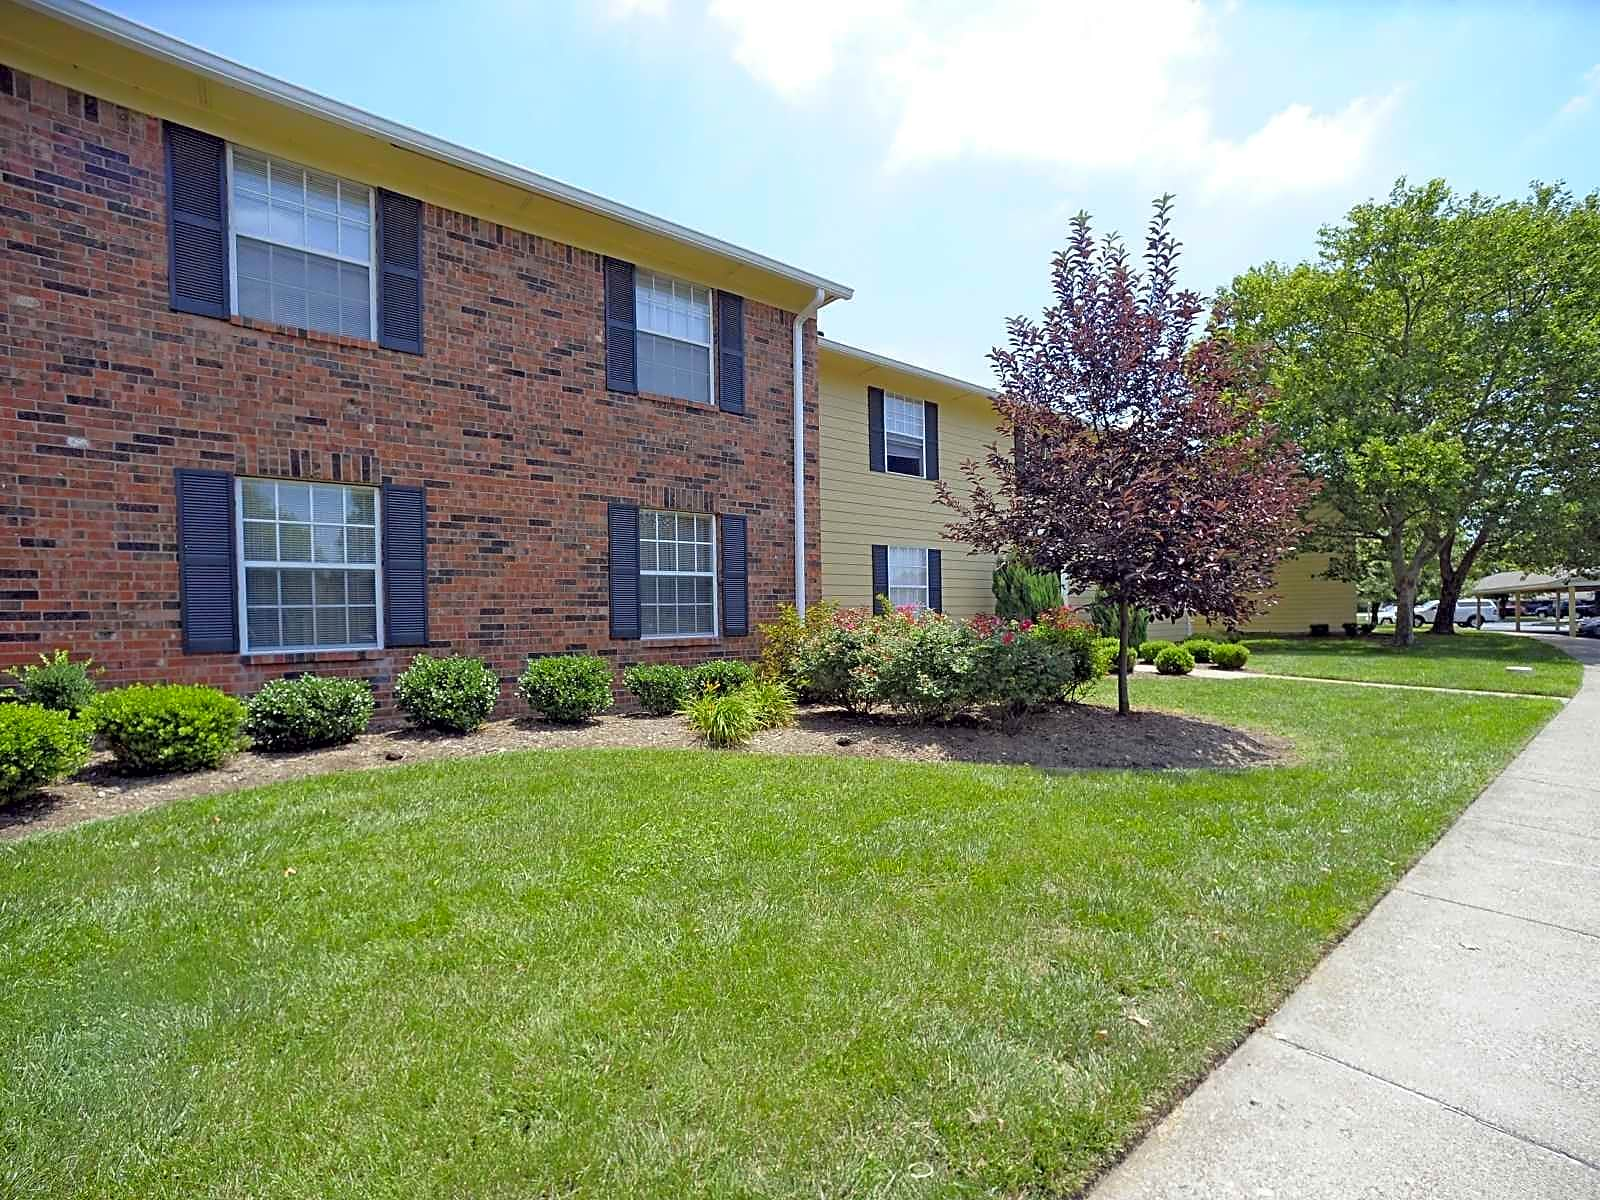 Photo: Evansville Apartment for Rent - $1099.00 / month; 3 Bd & 1 Ba